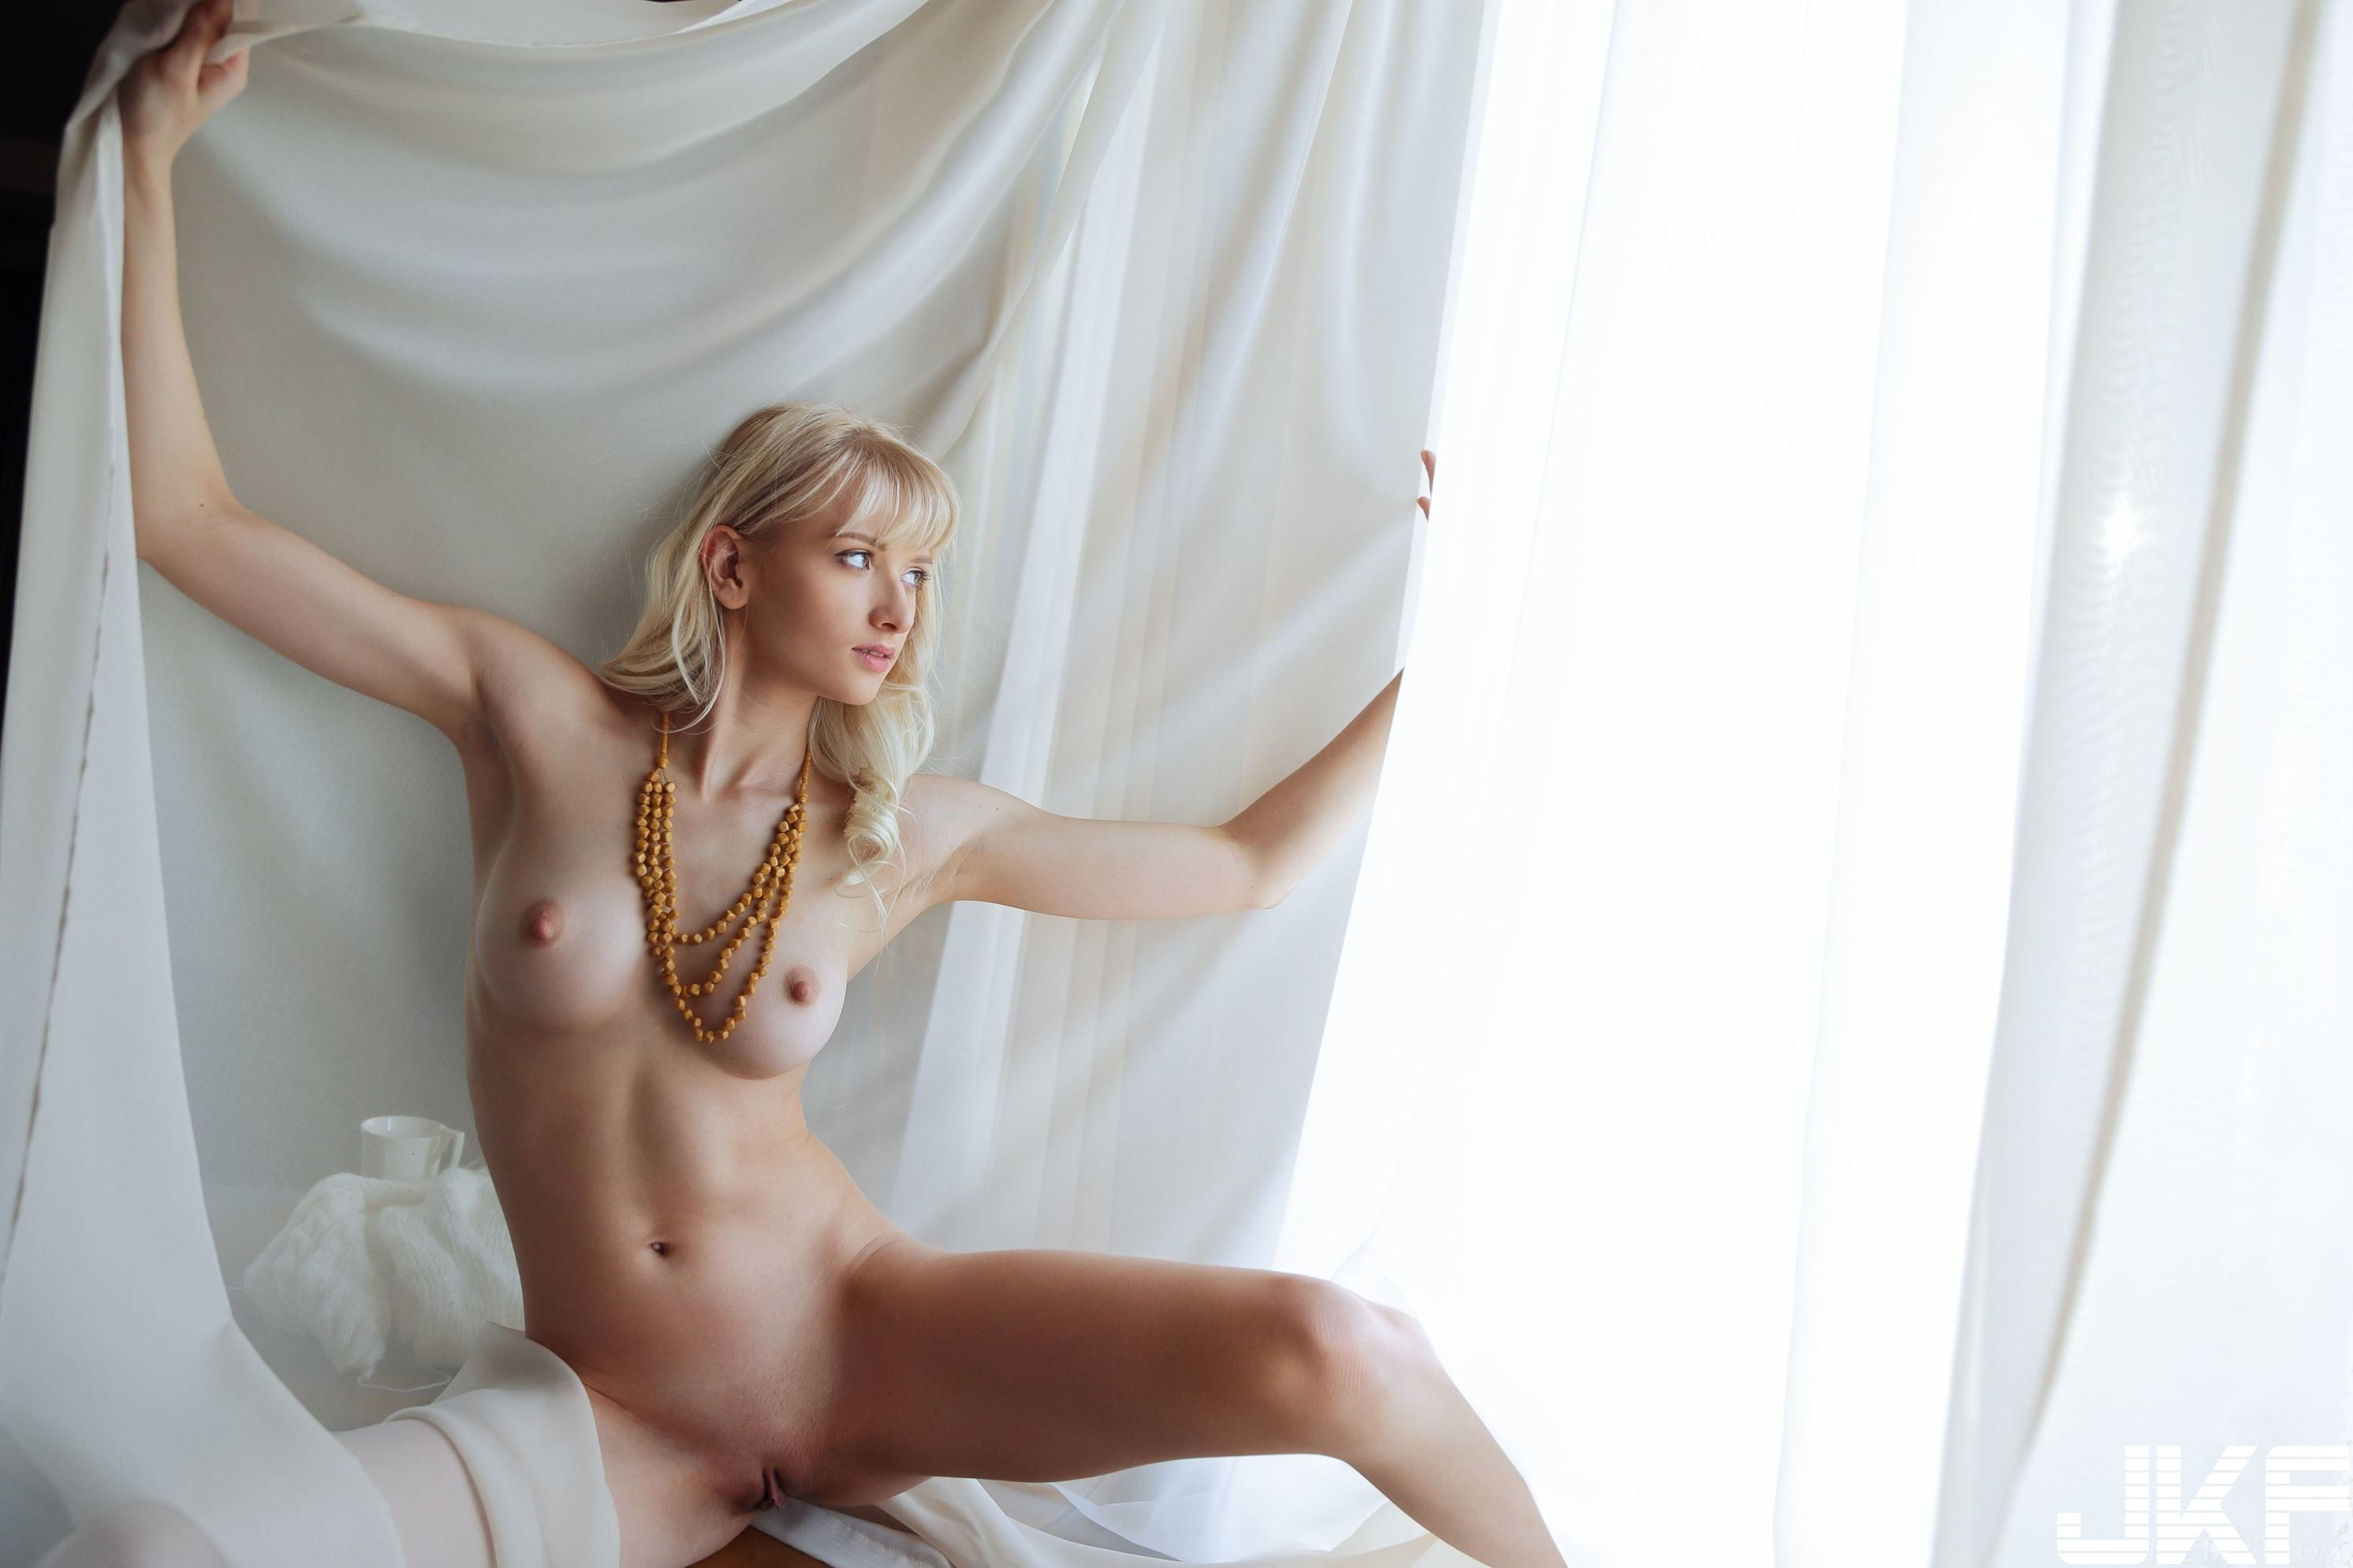 Shaved-Blonde-Adelia-B-with-Open-Pussy-b1 (11).jpg